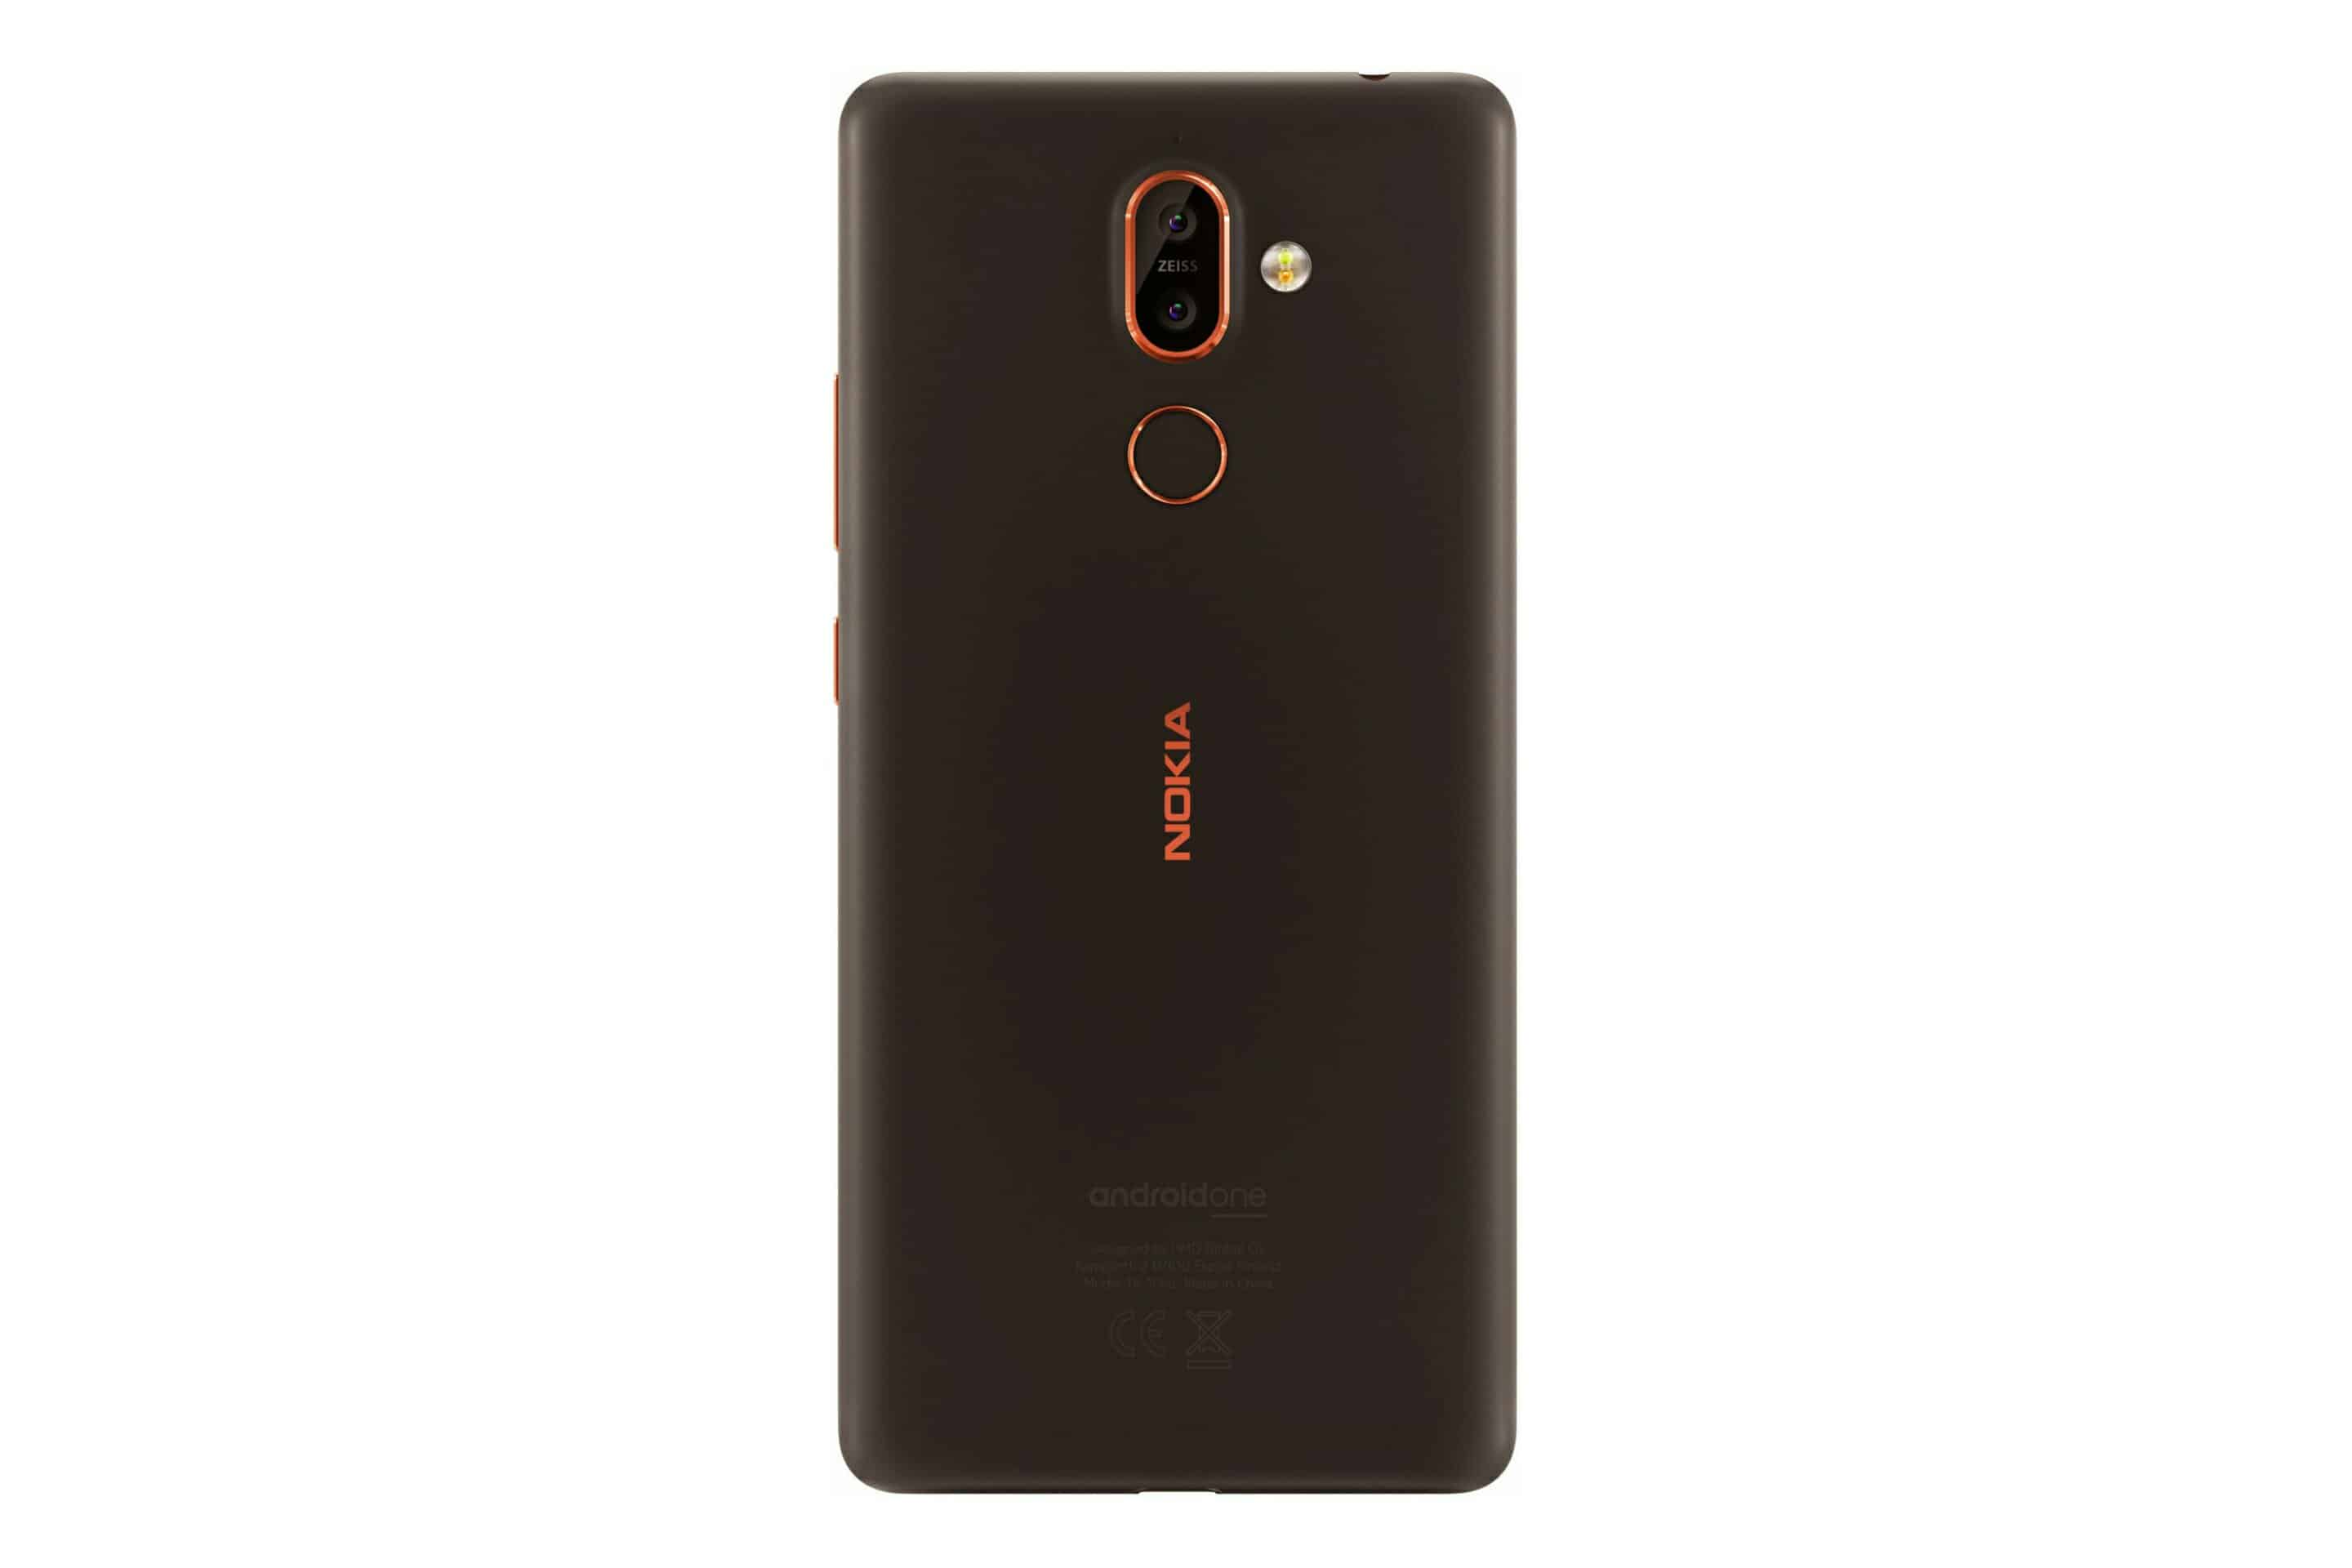 Nokia 8 Pro is coming; Nokia 1 and Nokia 7+ leaks and more!